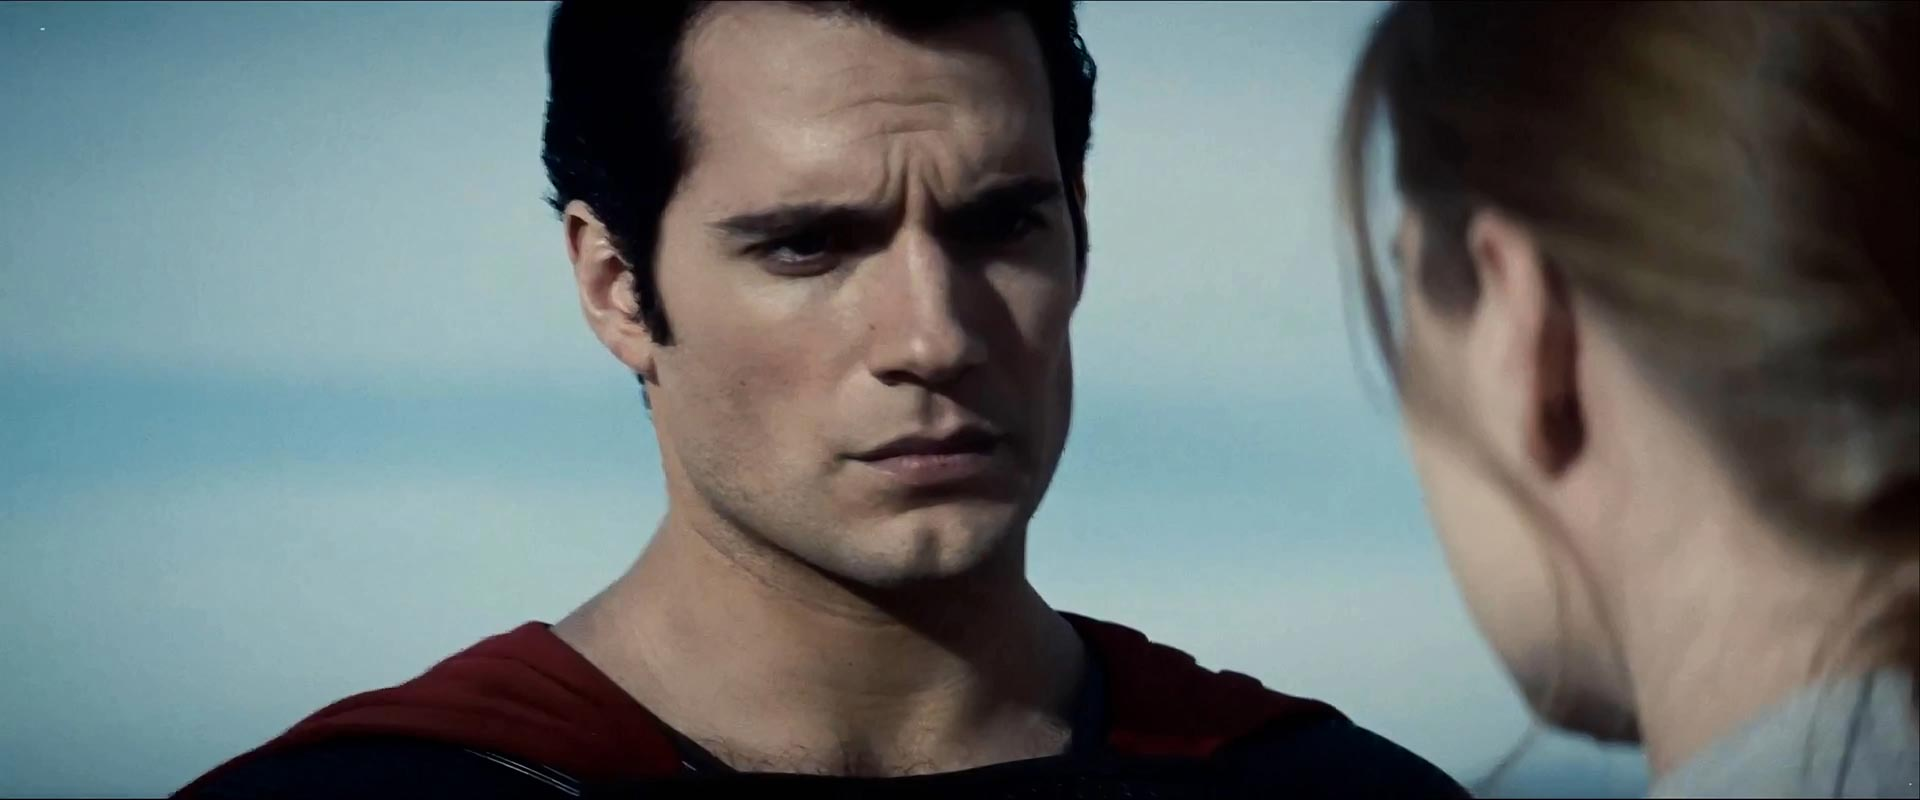 http://www.filmofilia.com/wp-content/uploads/2012/12/Man-of-Steel_03.jpg